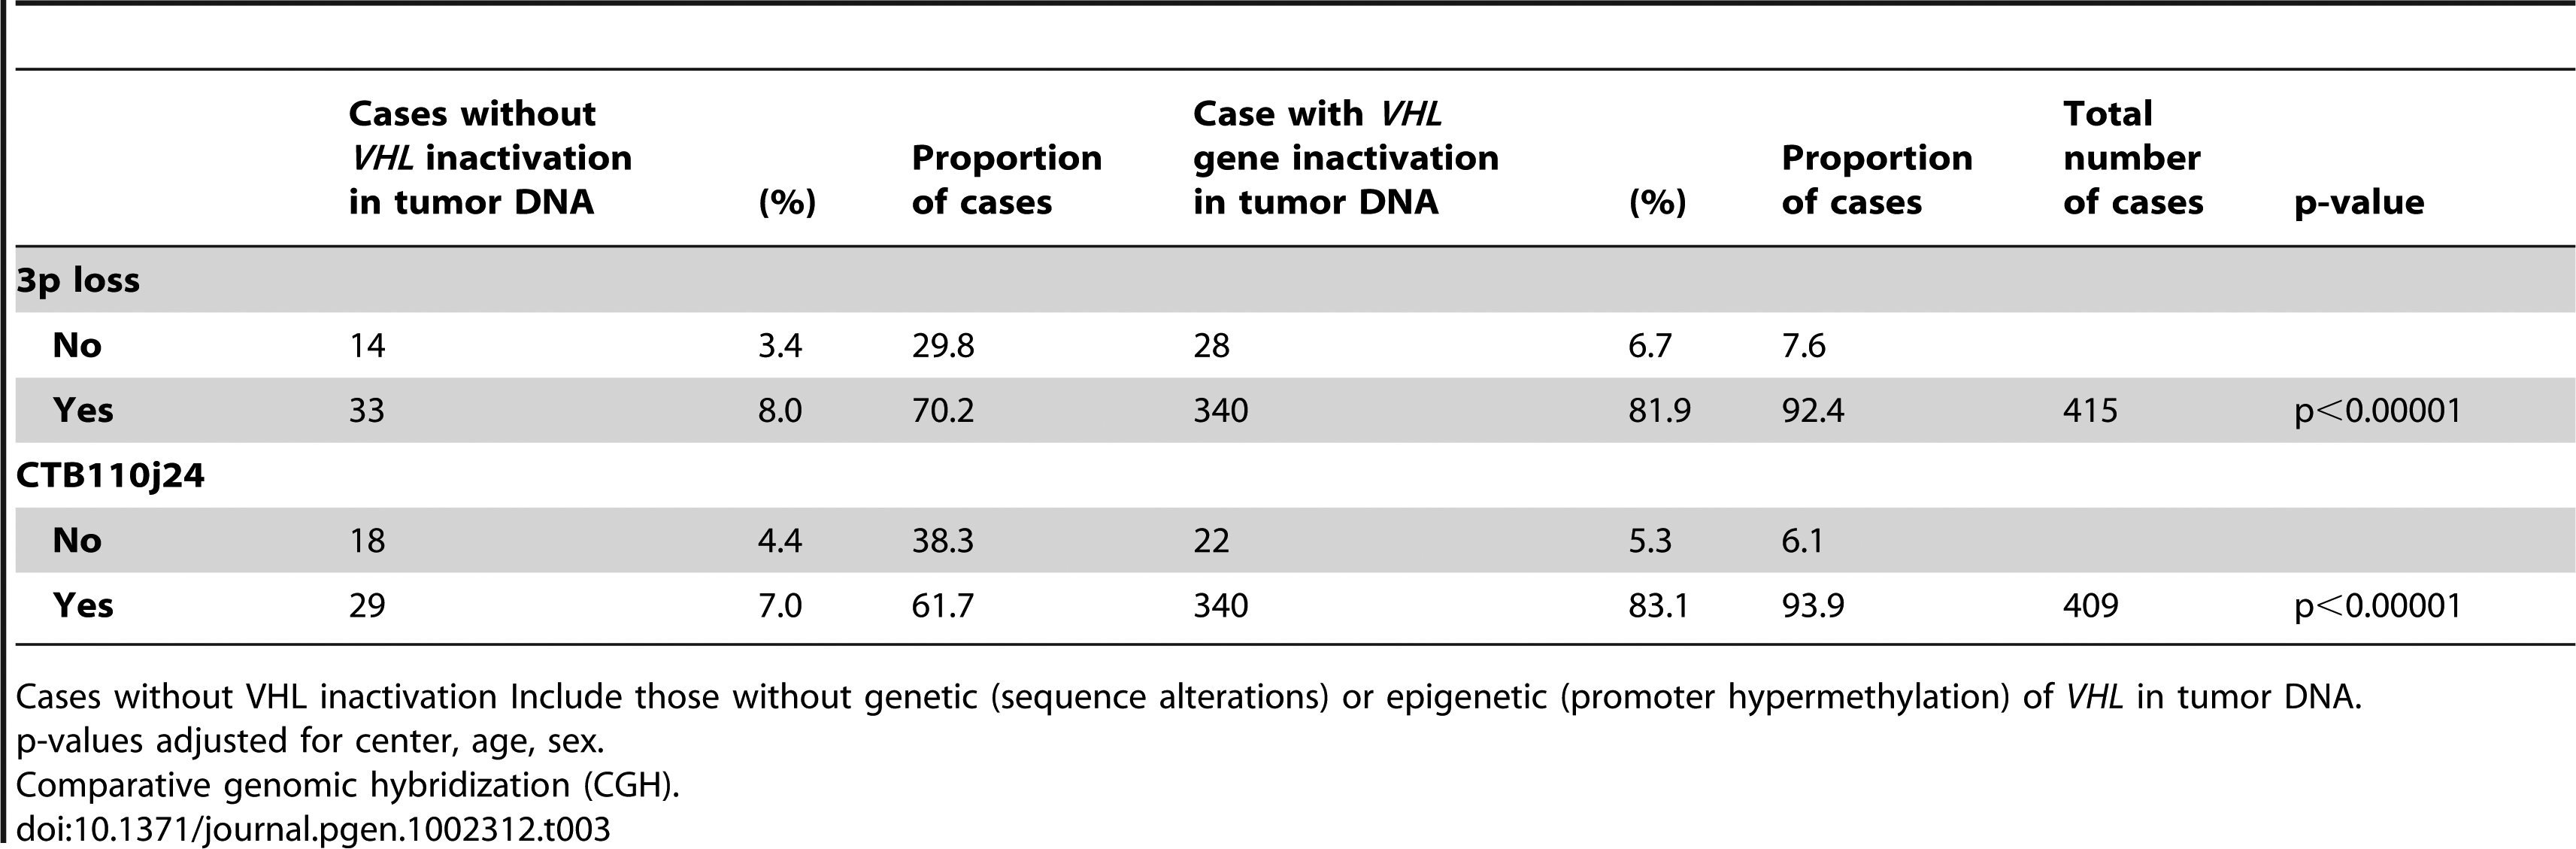 Cases with/without <i>VHL</i> genetic or epigenetic inactivation and chromosome 3p and <i>VHL</i> locus loss (clone CTB-110j24) using array CGH.